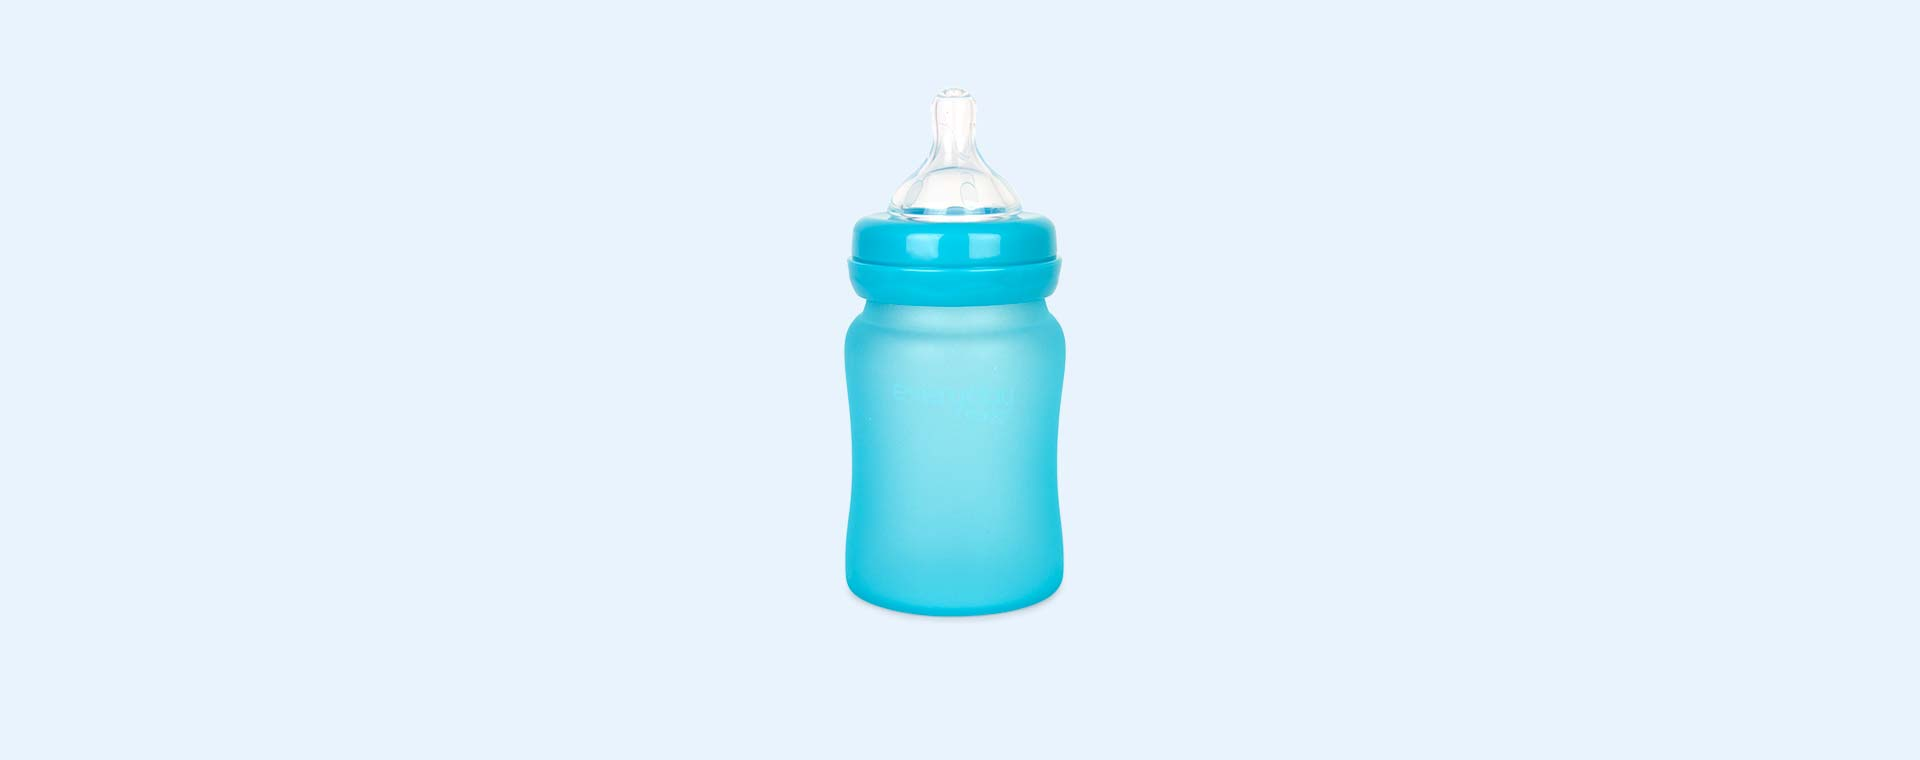 Turquoise Everyday Baby Glass Bottle 150ml